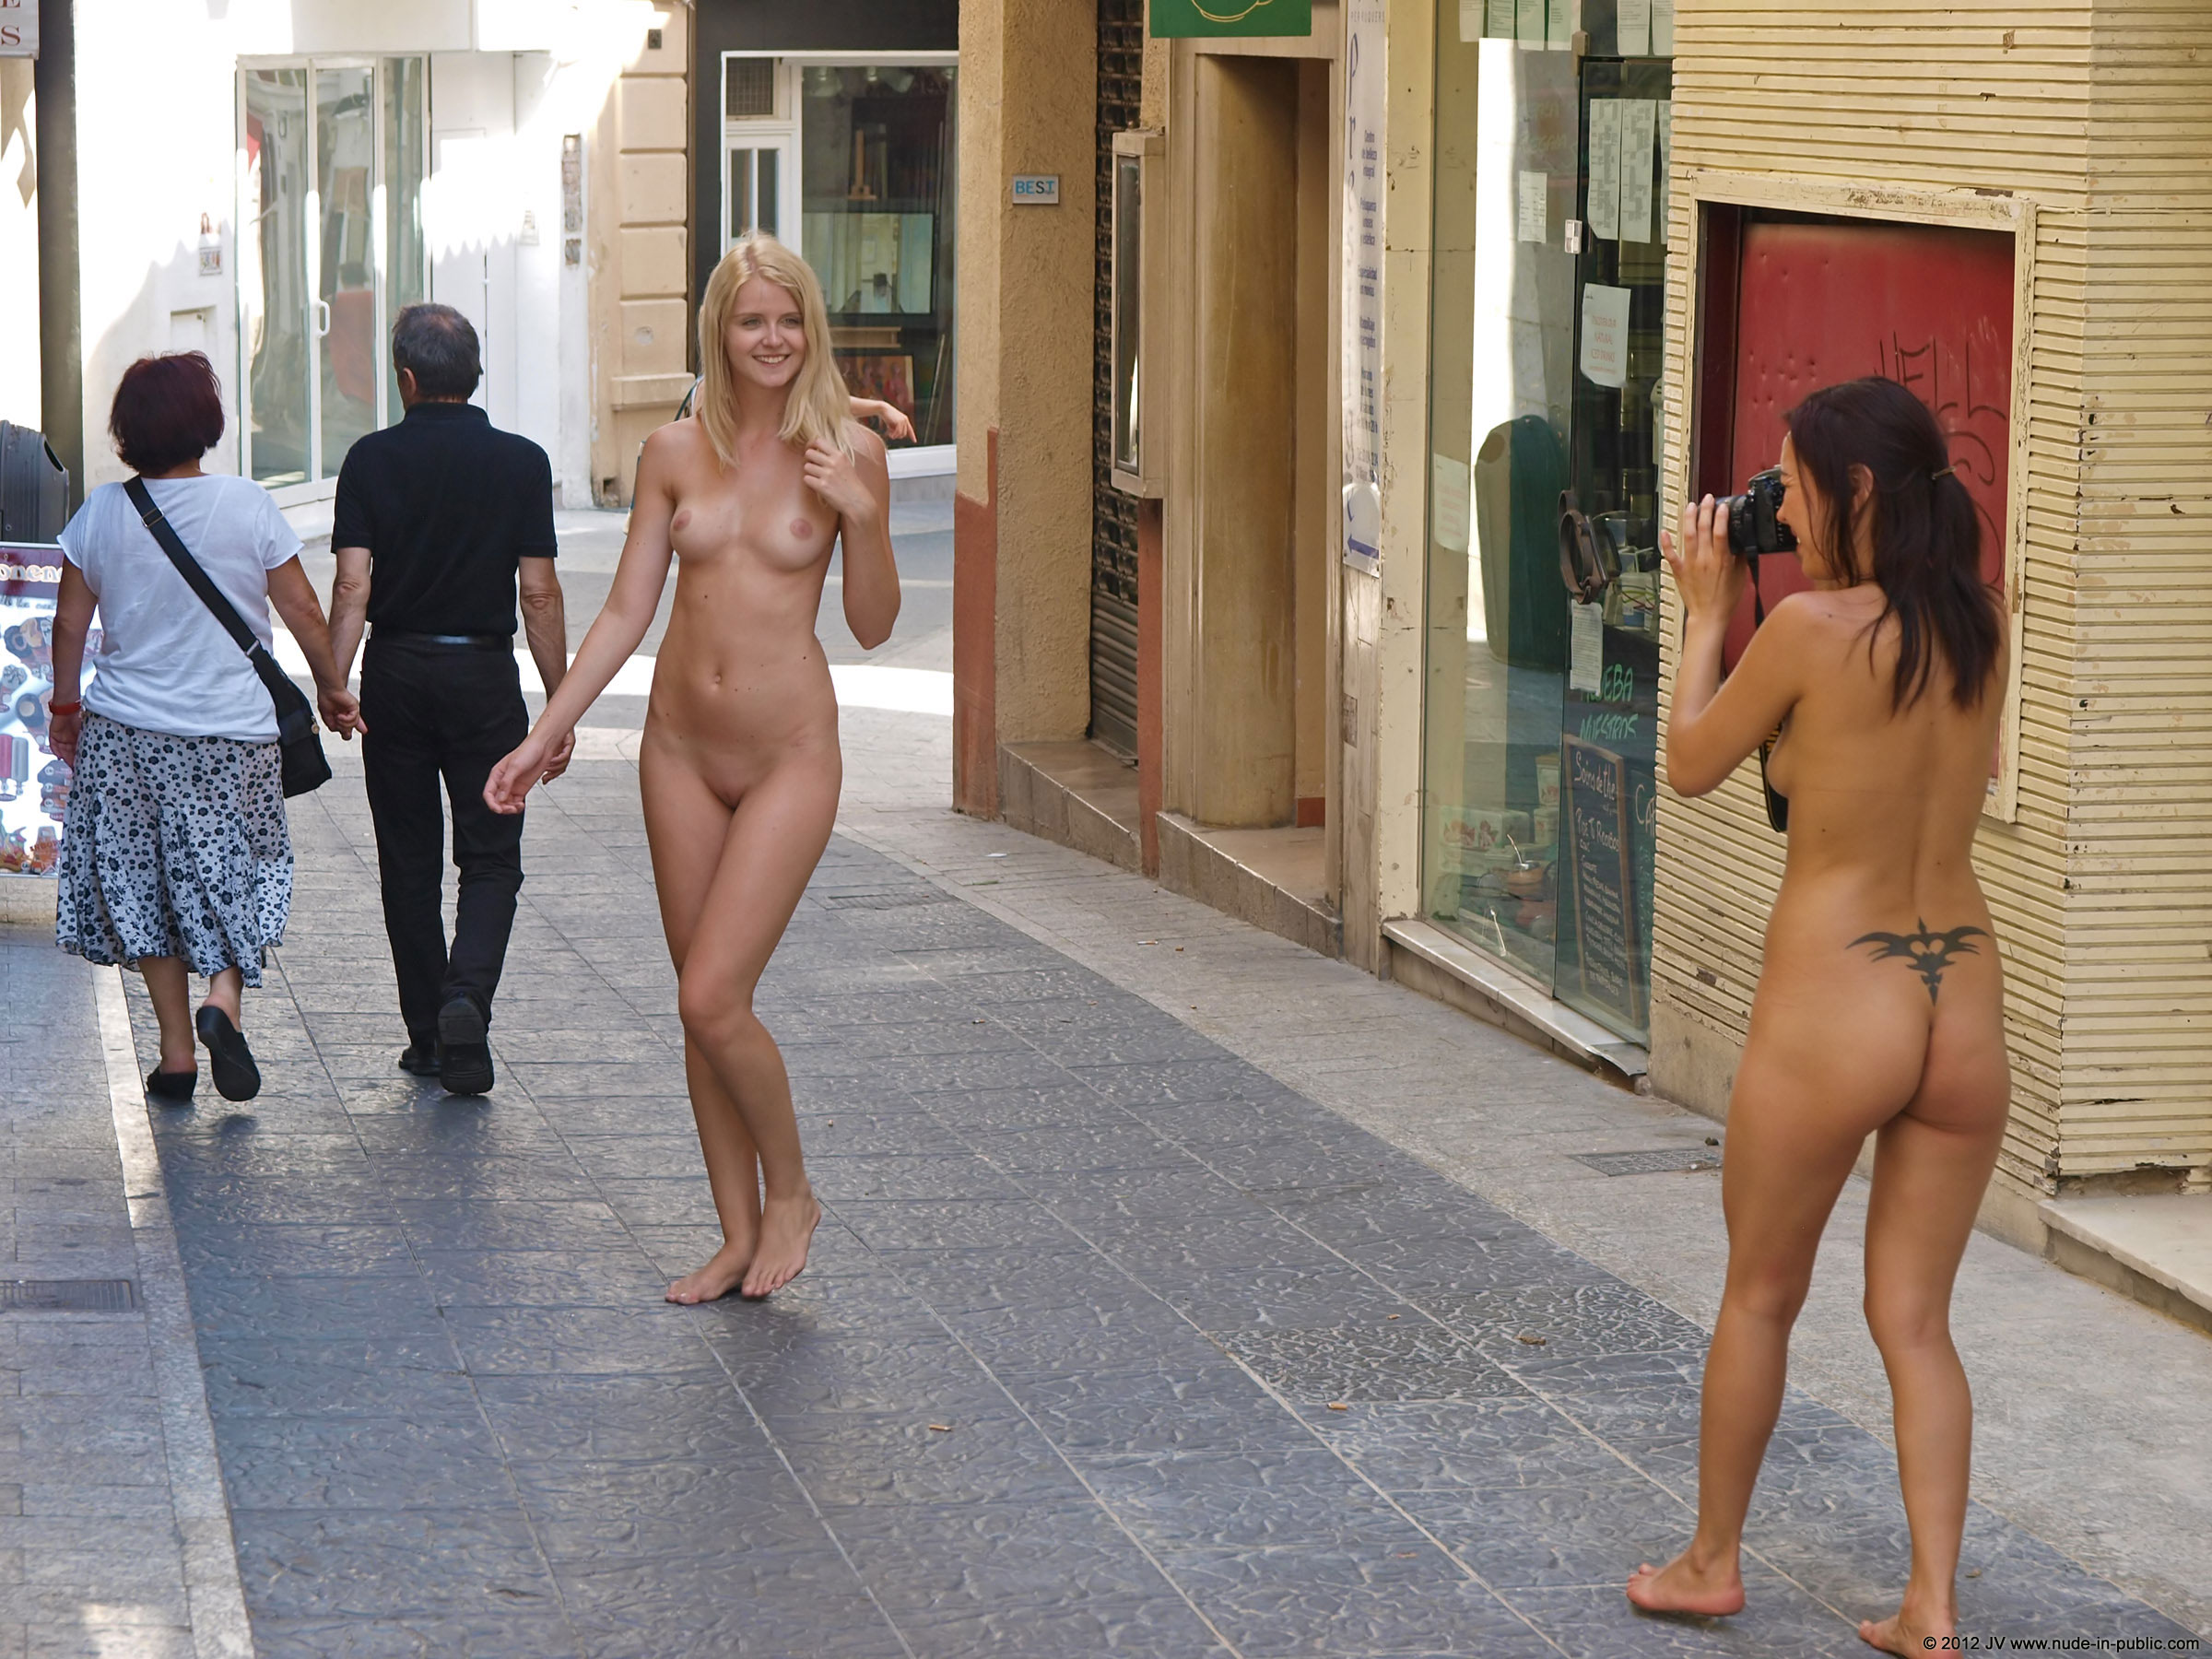 Girls becoming naked in public